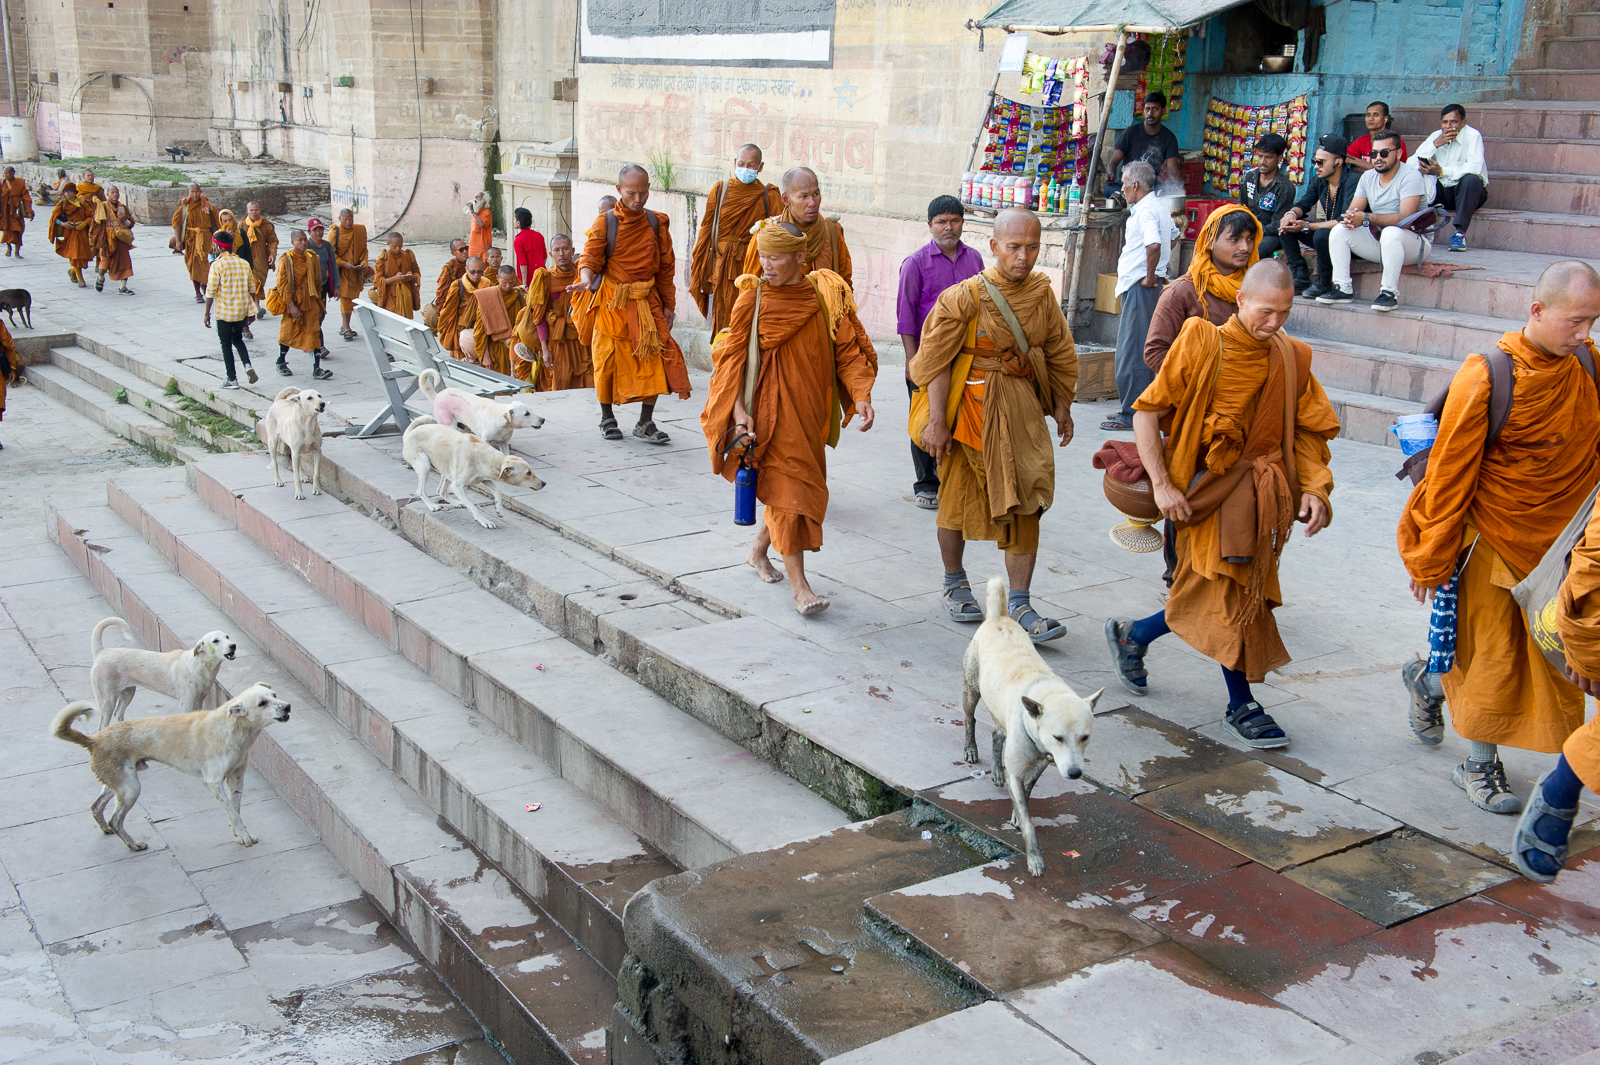 Buddhist monks being chased by dogs on the ghats, Varanasi, 2019